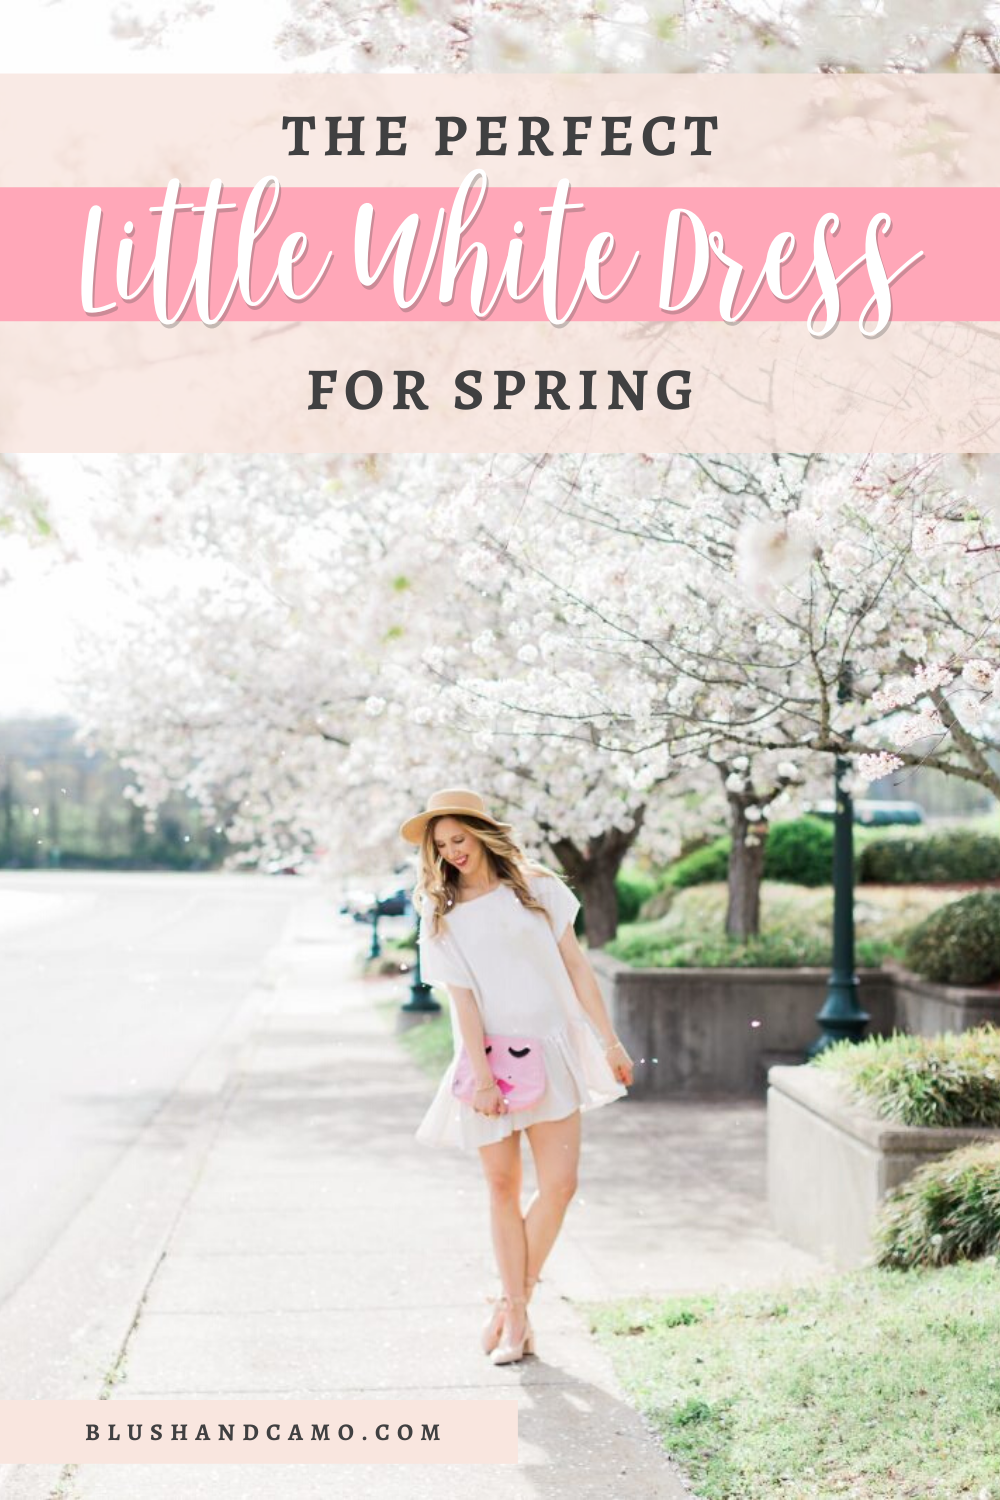 The perfect little white dress to add to your Spring fashion and wardrobe! #springfashion #fashionblogger #springstyle #fashioninspo #fashionblogstyle